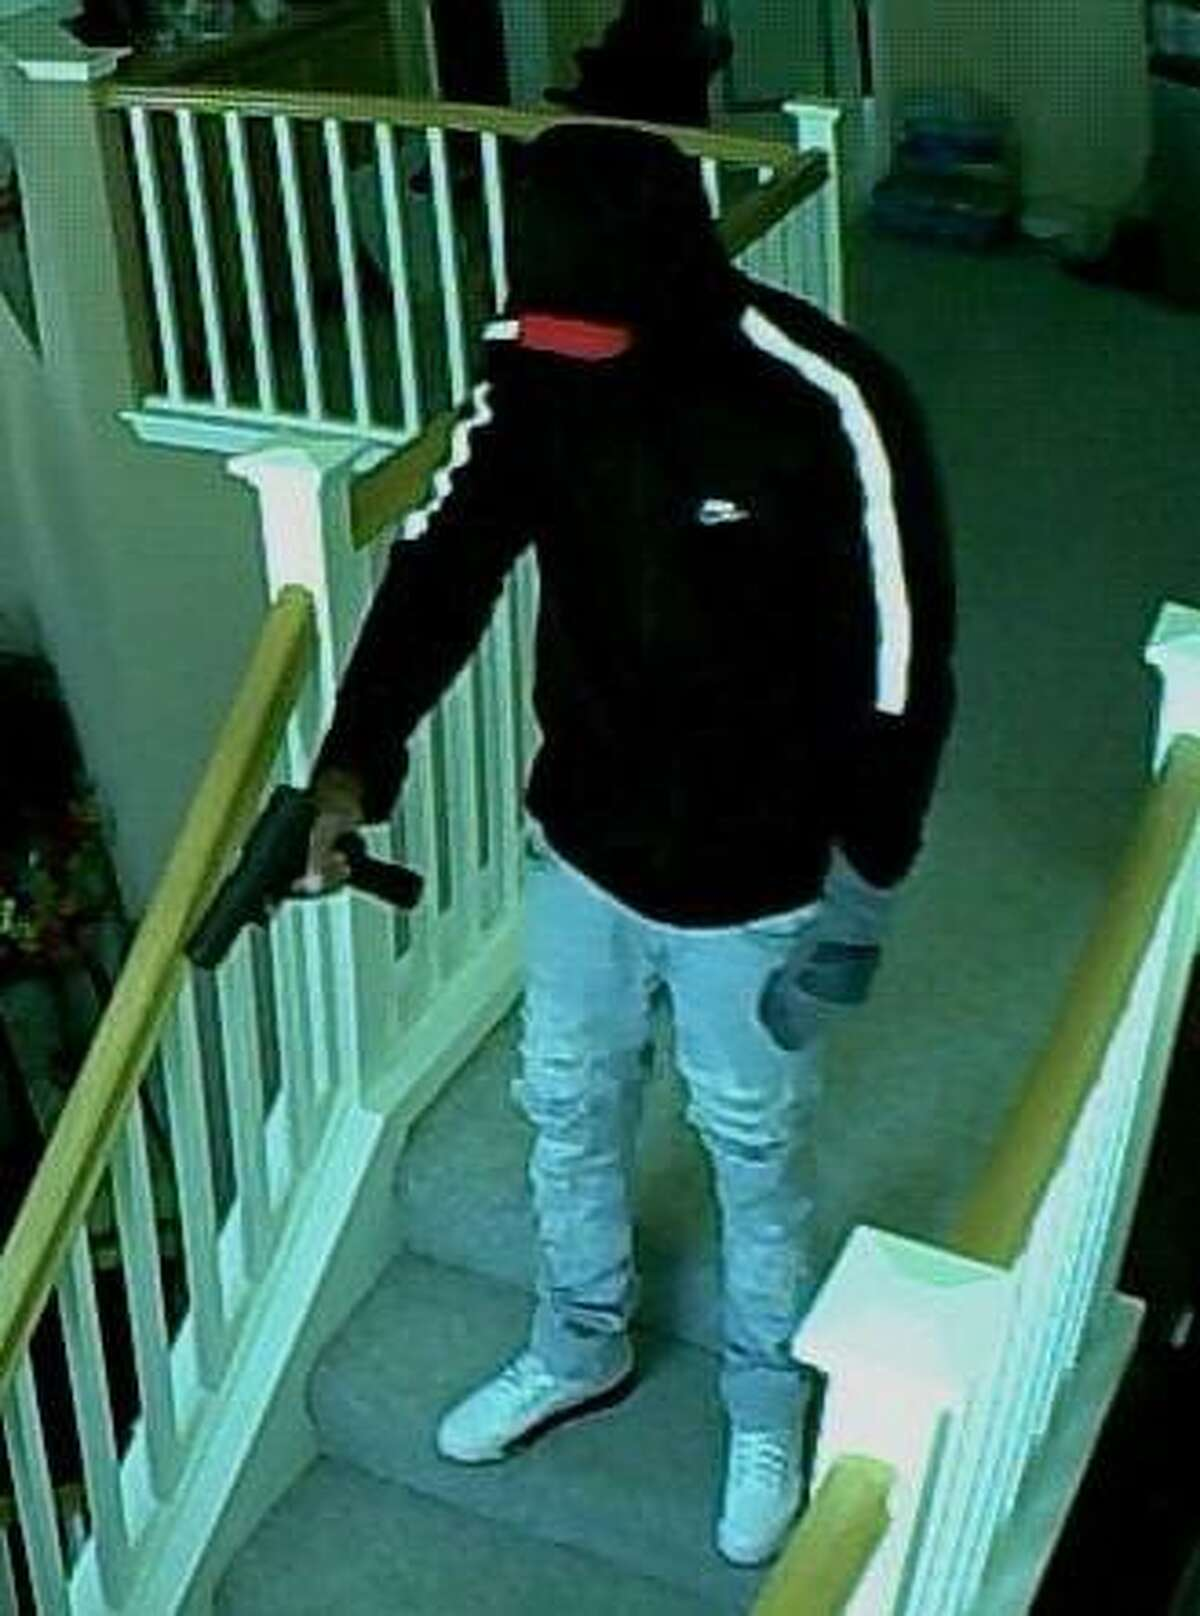 Police are searching for two armed suspects who fled after robbing a home in Hayward on Monday.